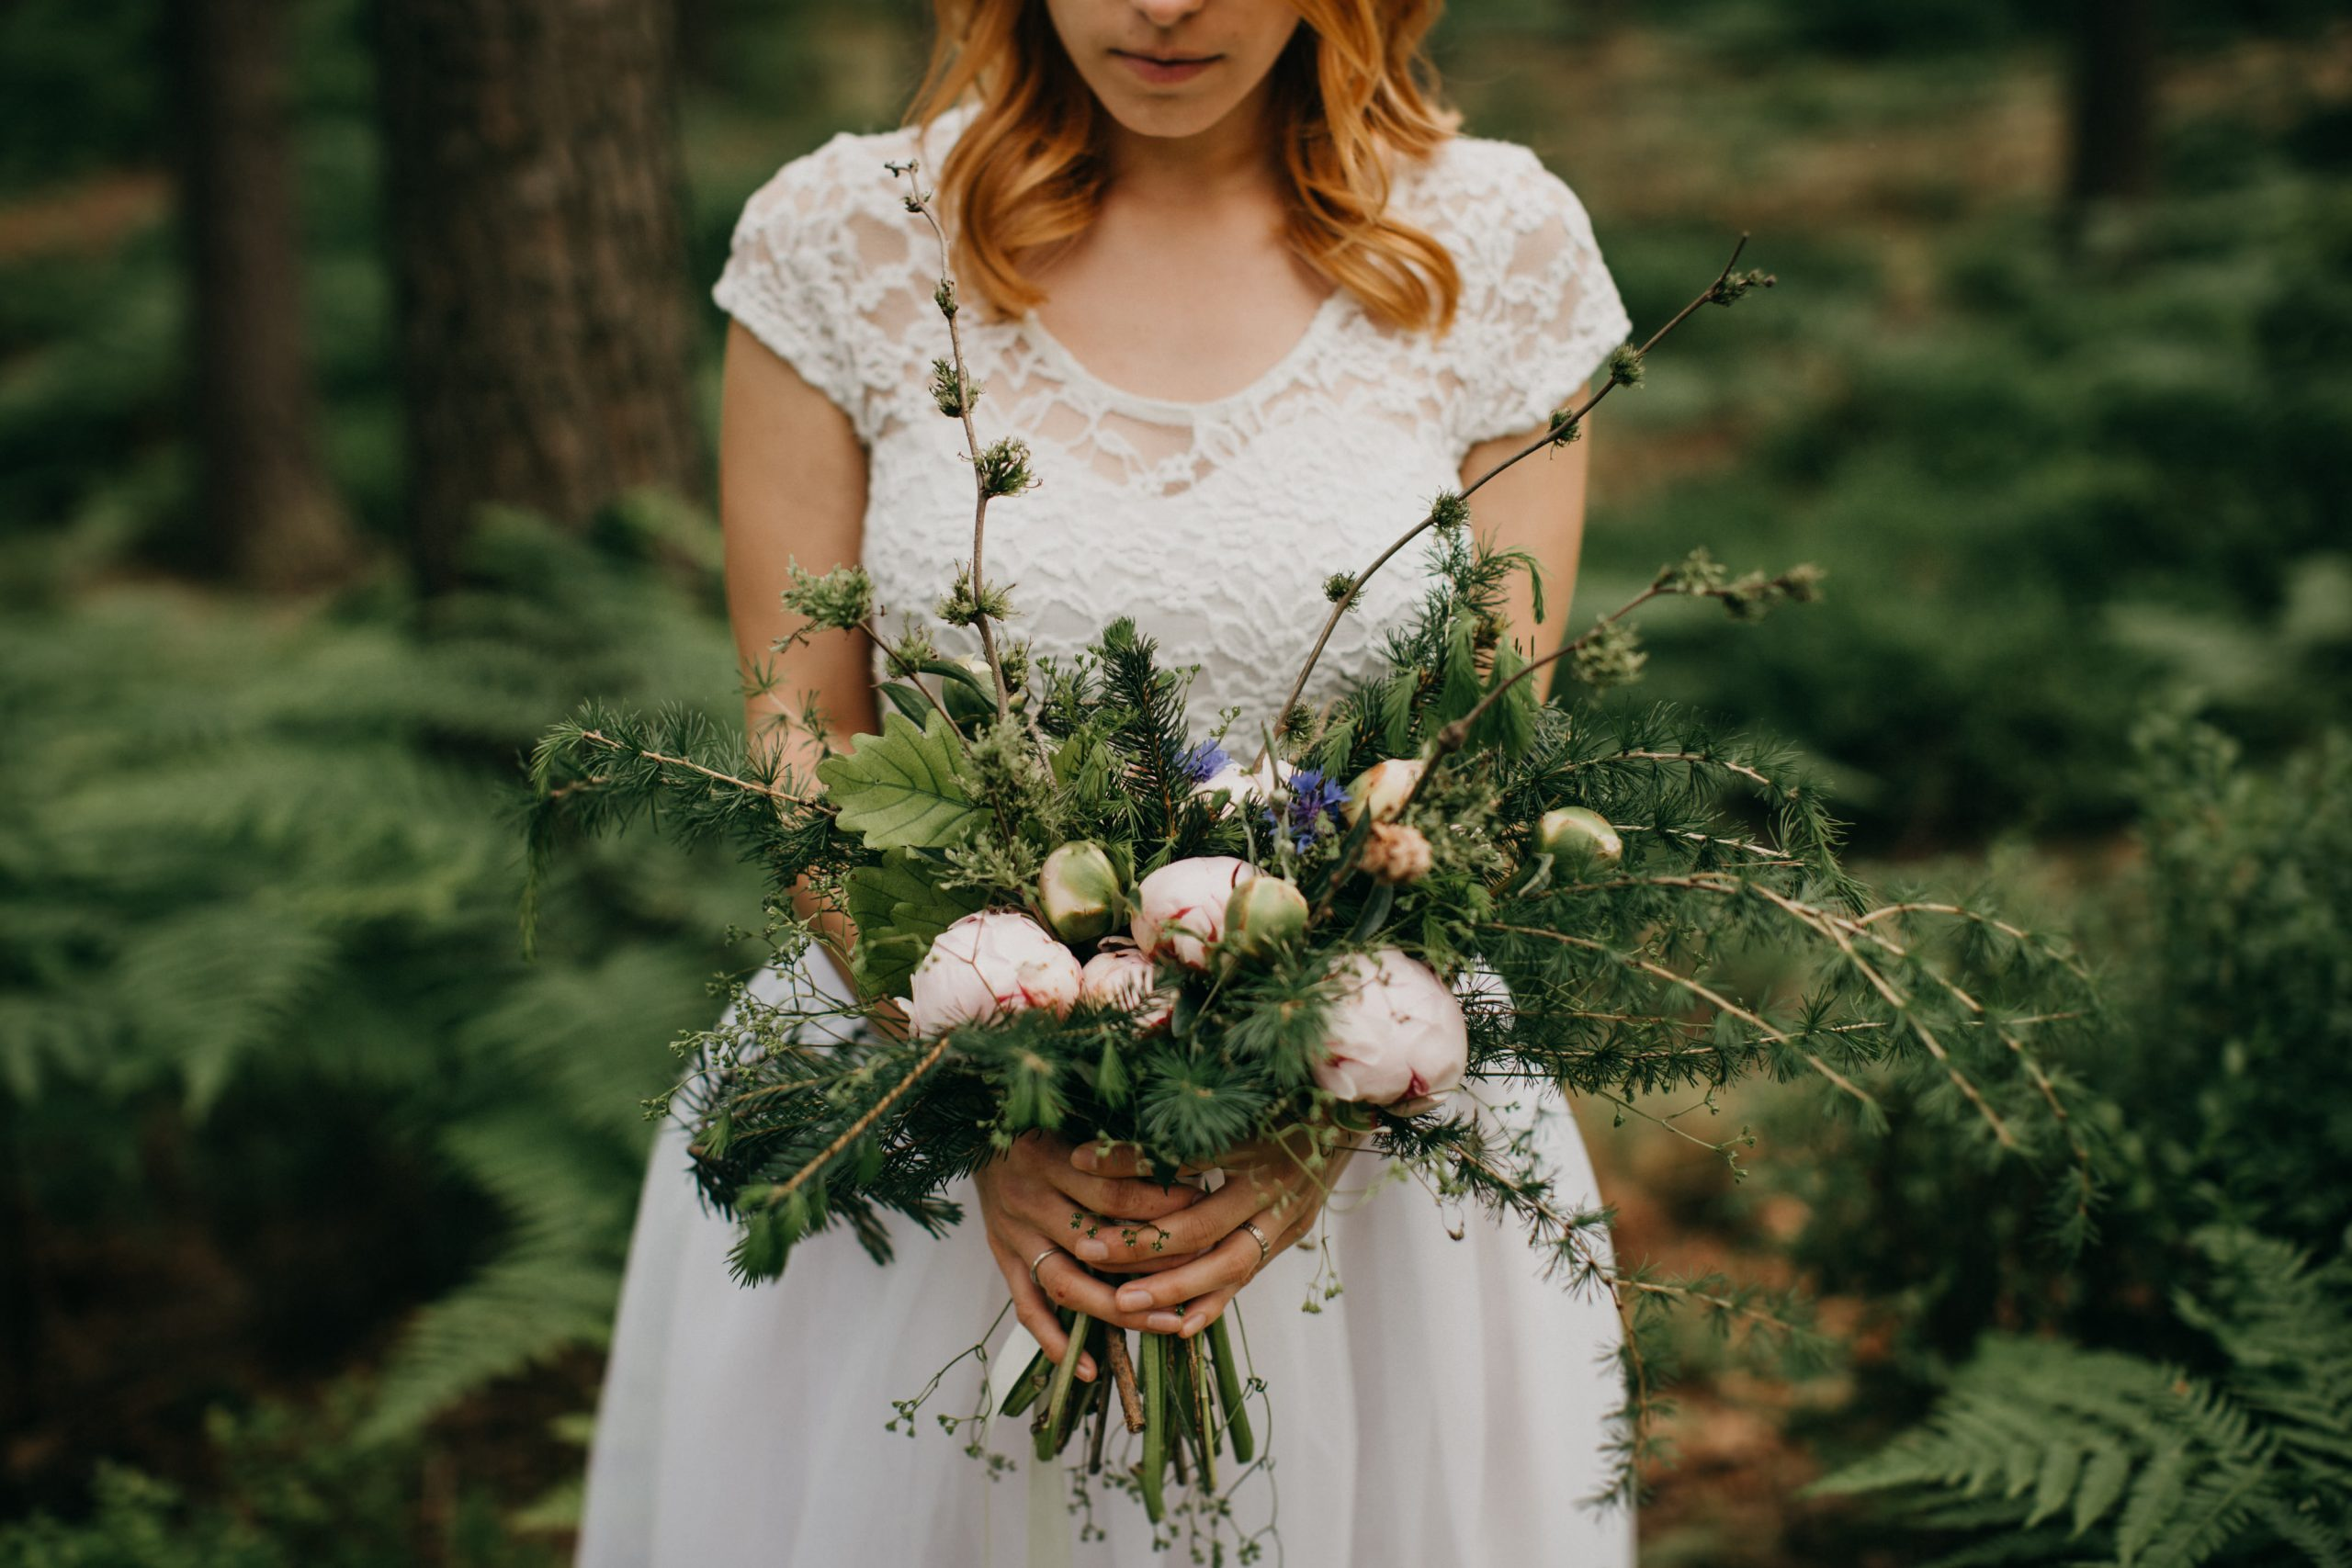 A photo of a bride holding her bridal bouquet.